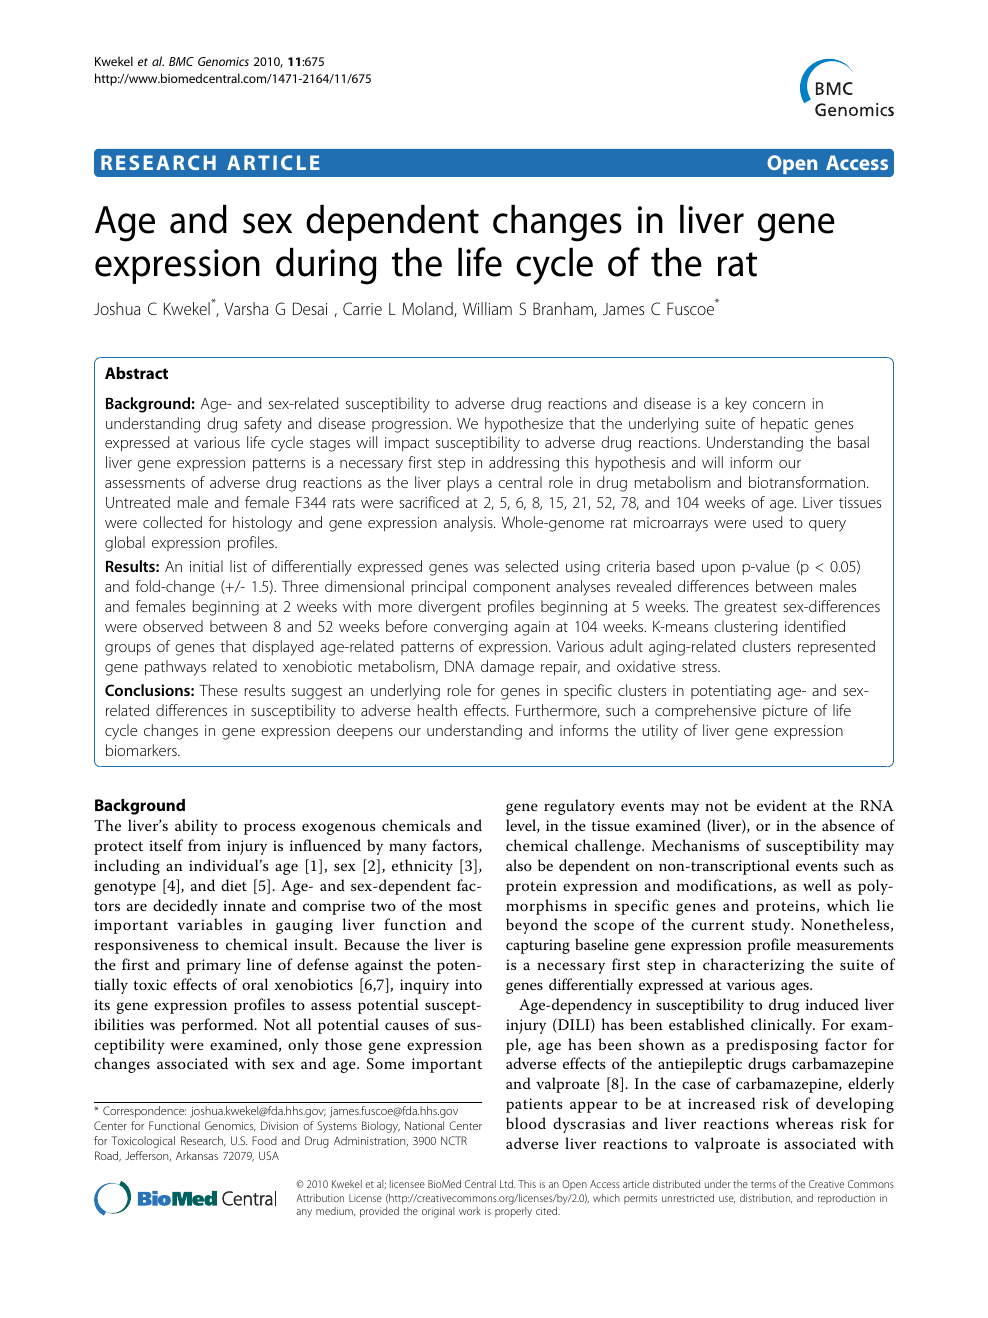 Gene Expression Patterns May Underlie >> Age And Sex Dependent Changes In Liver Gene Expression During The